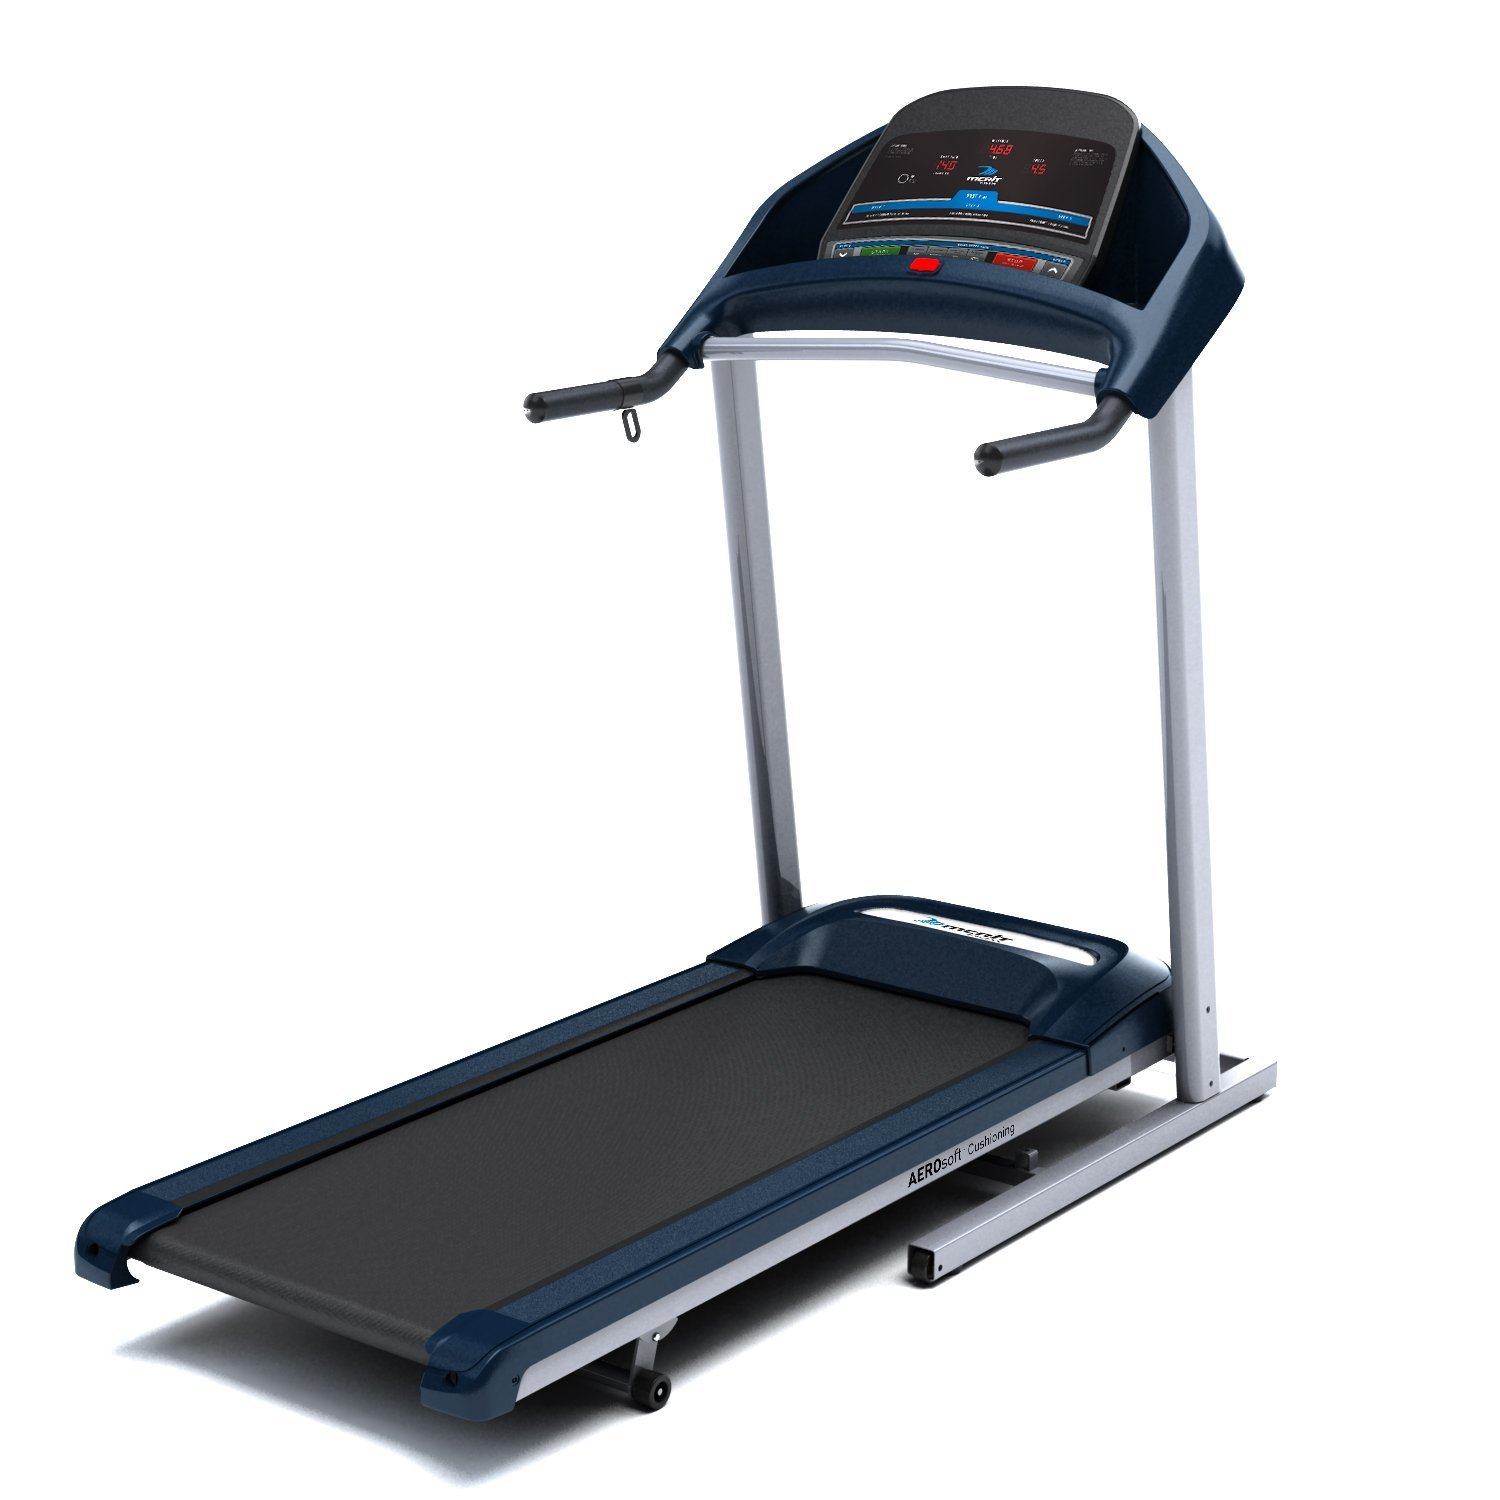 Merit Fitness 715T Plus Treadmill Review